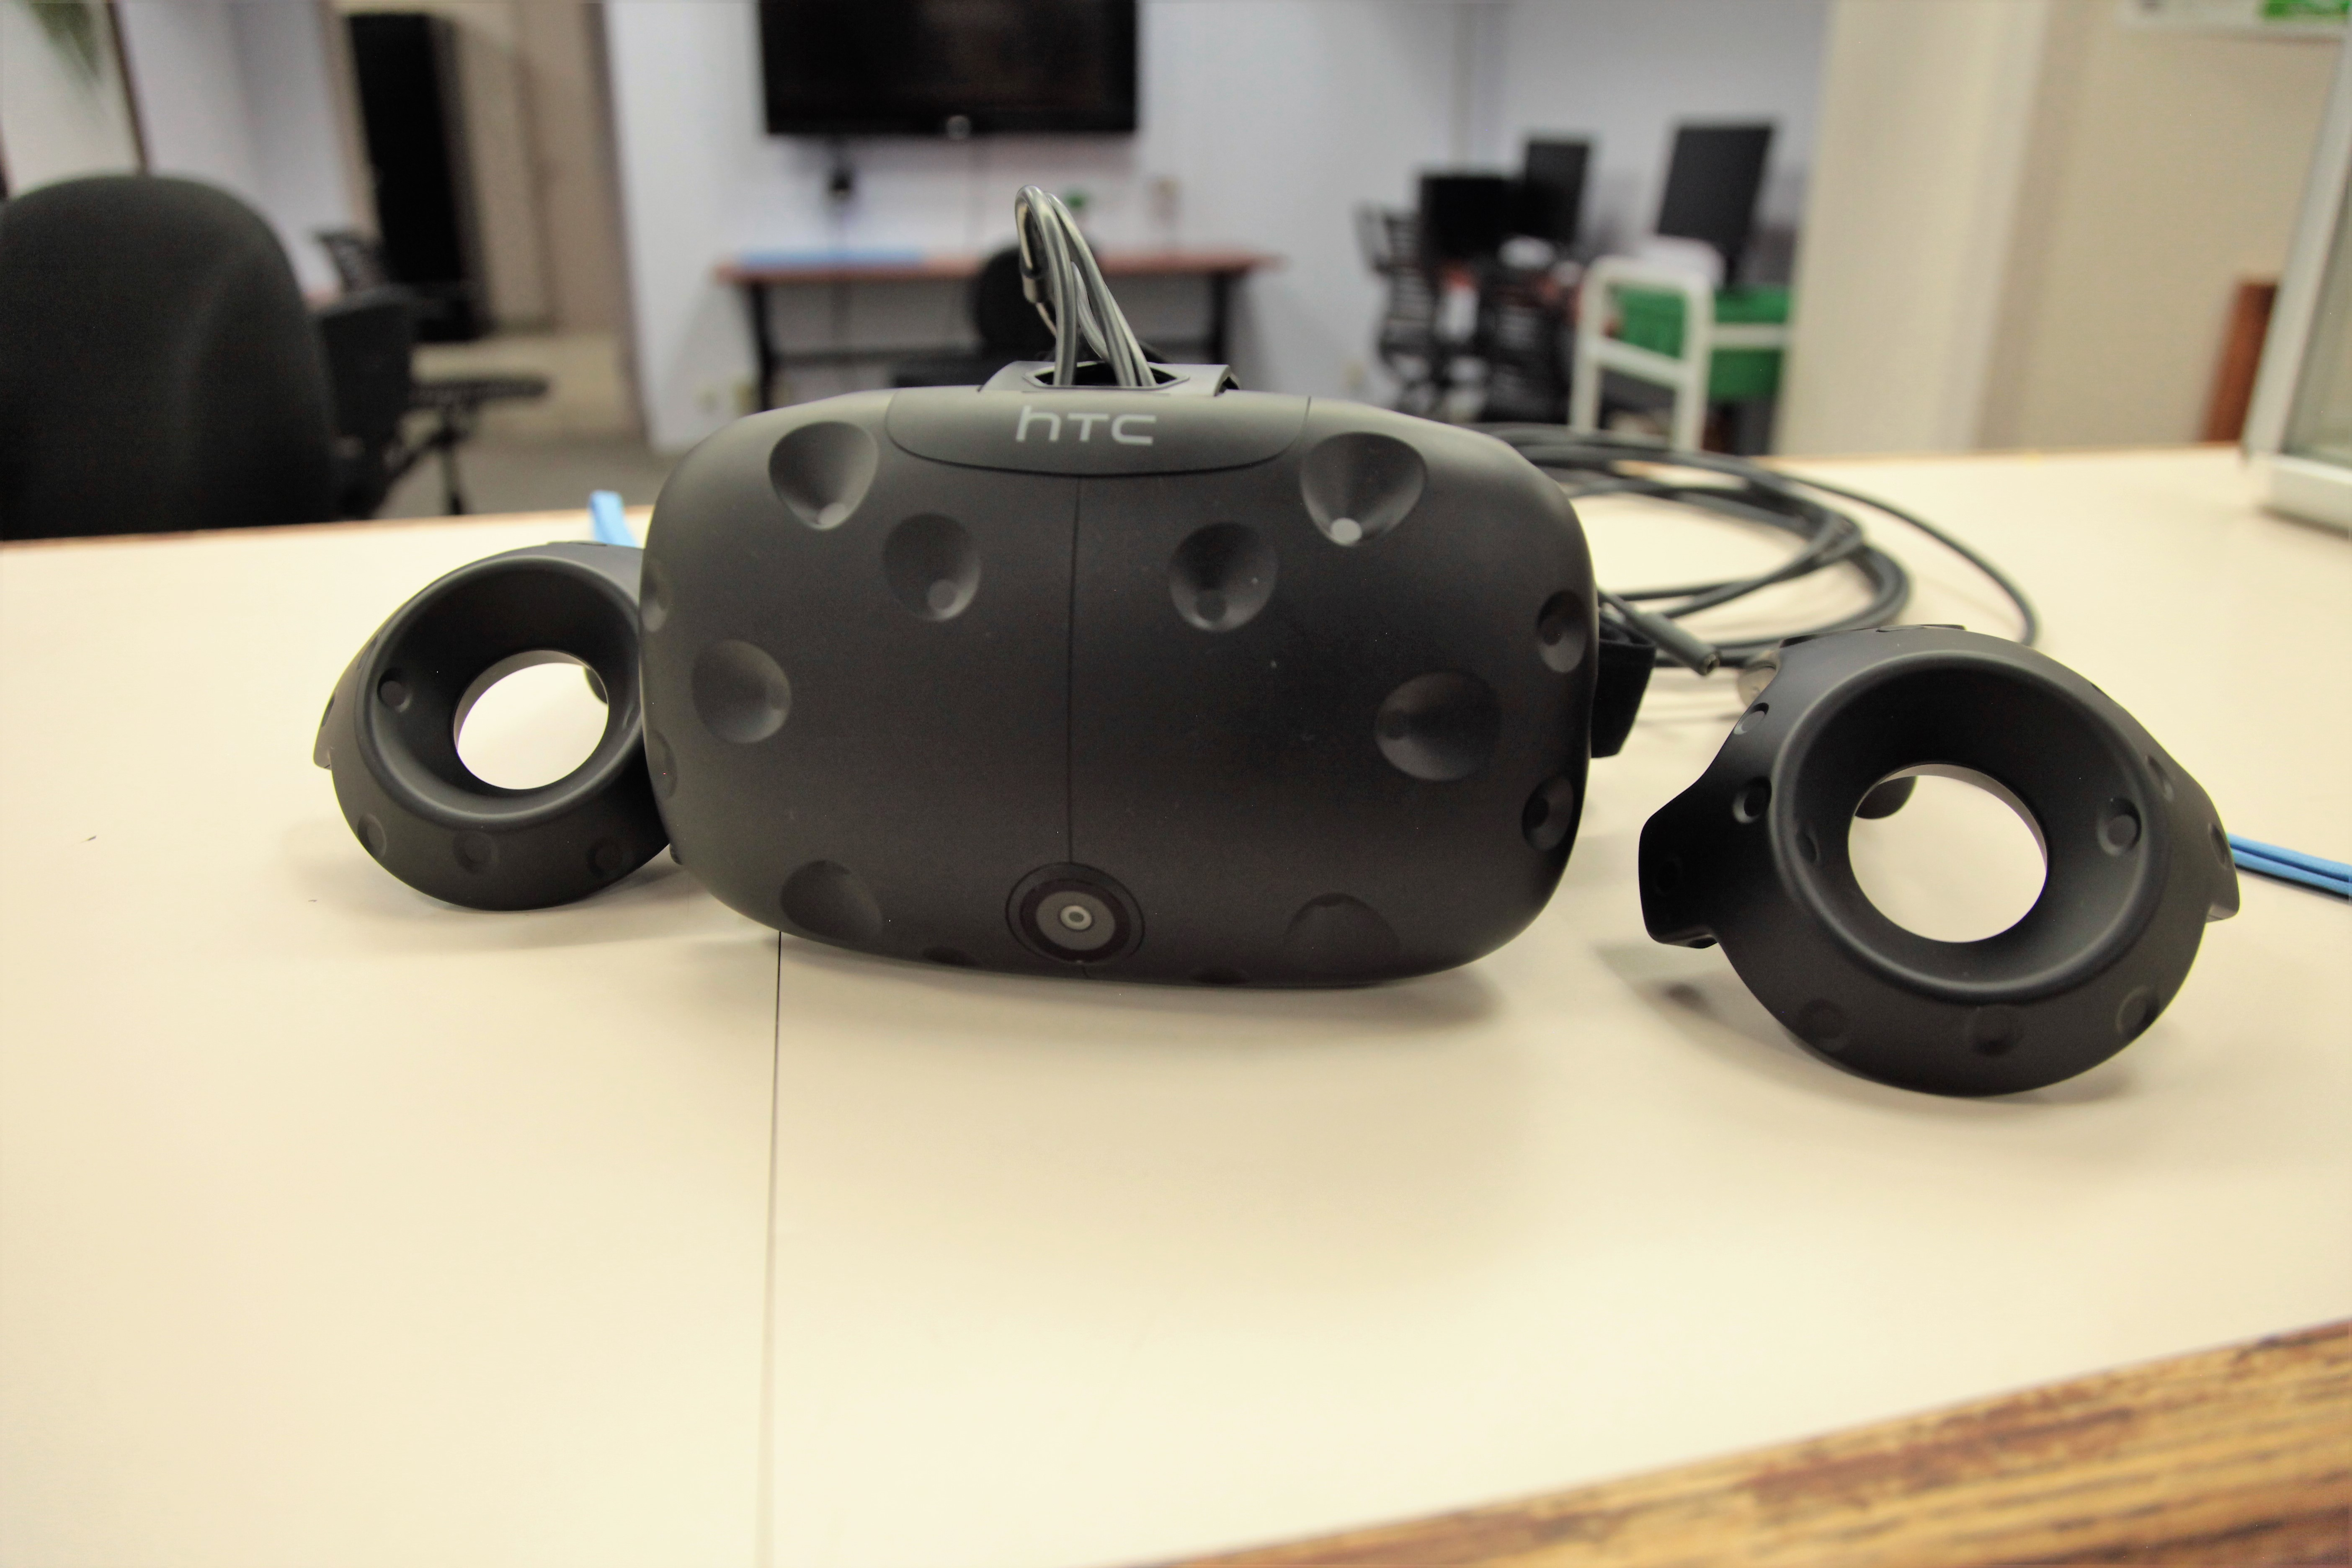 An HTC Vive headset and two controllers sitting on a counter